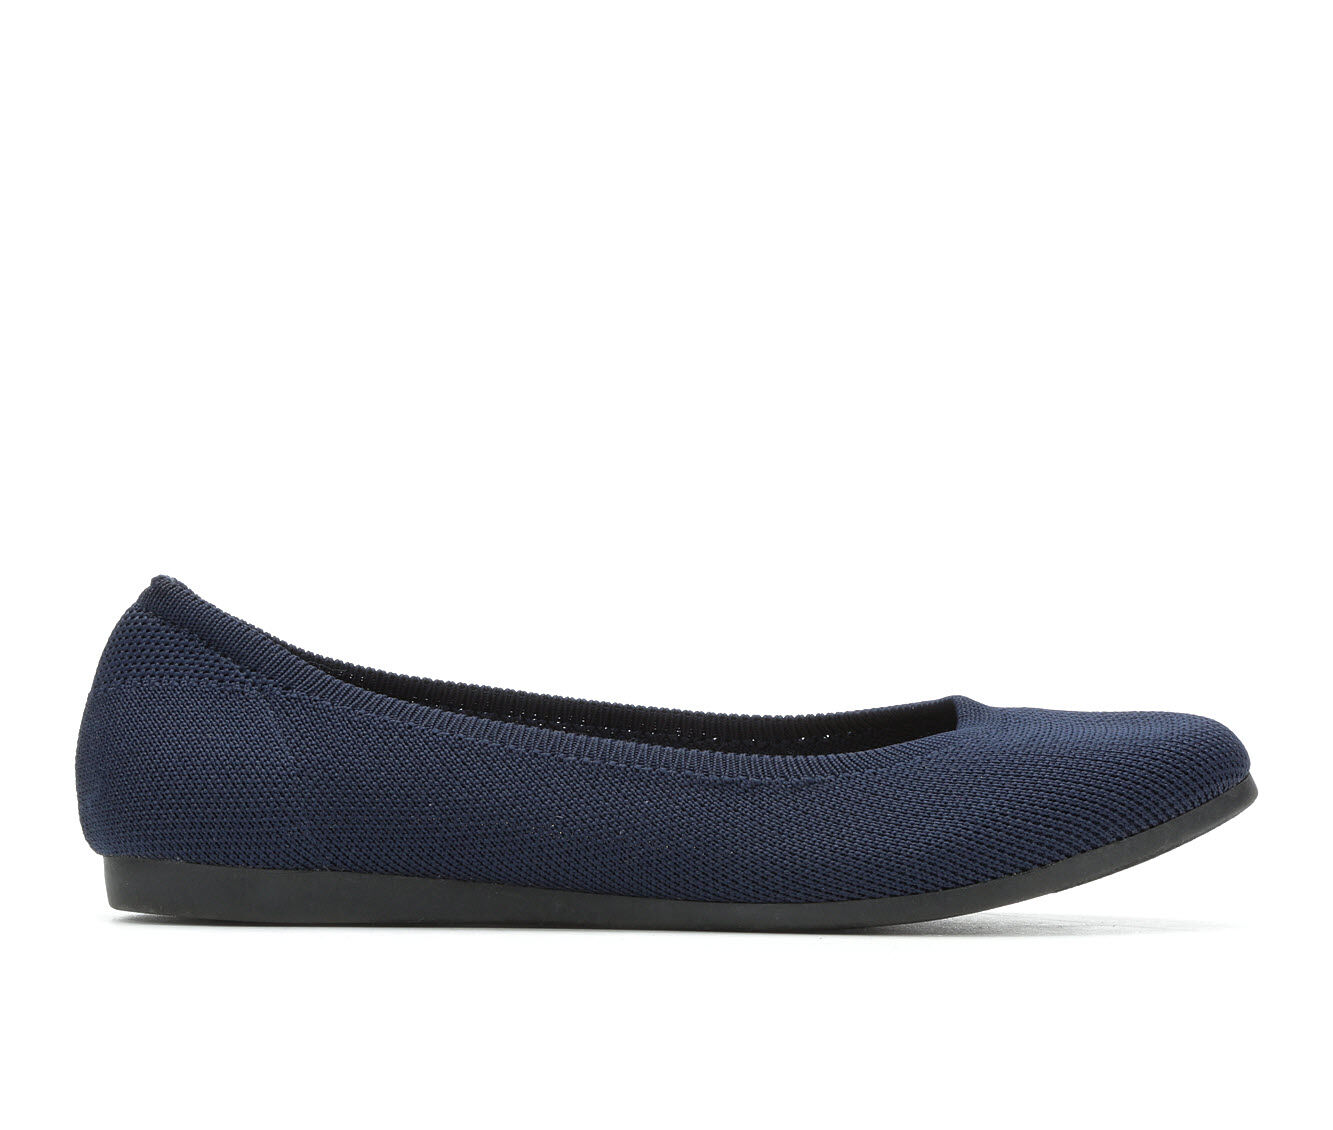 new arrivals Women's Jellypop Apex Flats Navy Knit